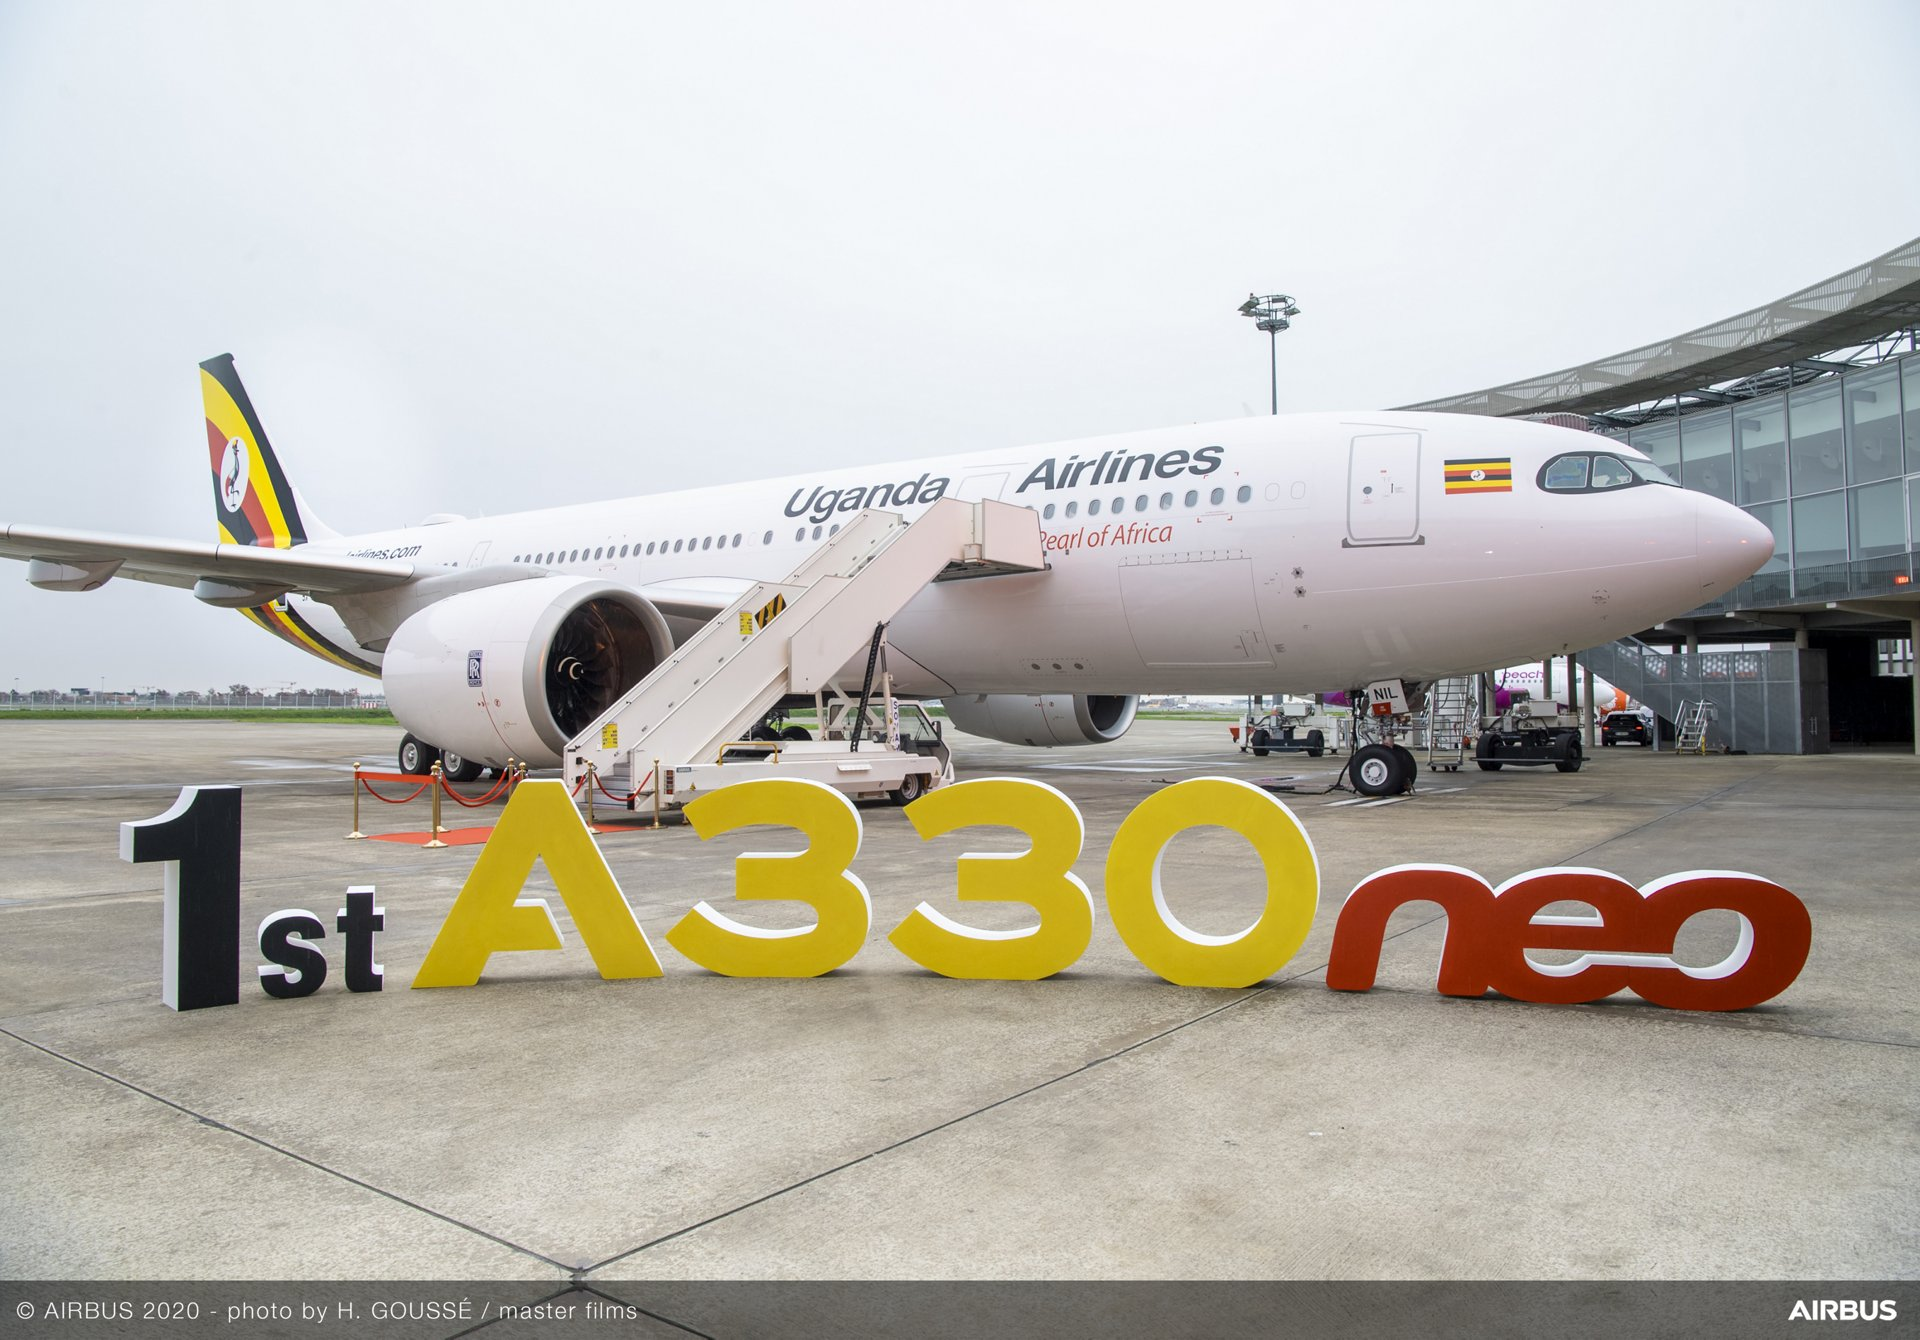 The first Airbus aircraft delivered to Uganda Airlines – an A330-800 version received in December 2020 – enables this carrier to launch long-range operations with non-stop intercontinental flights to the Middle East, Europe and Asia